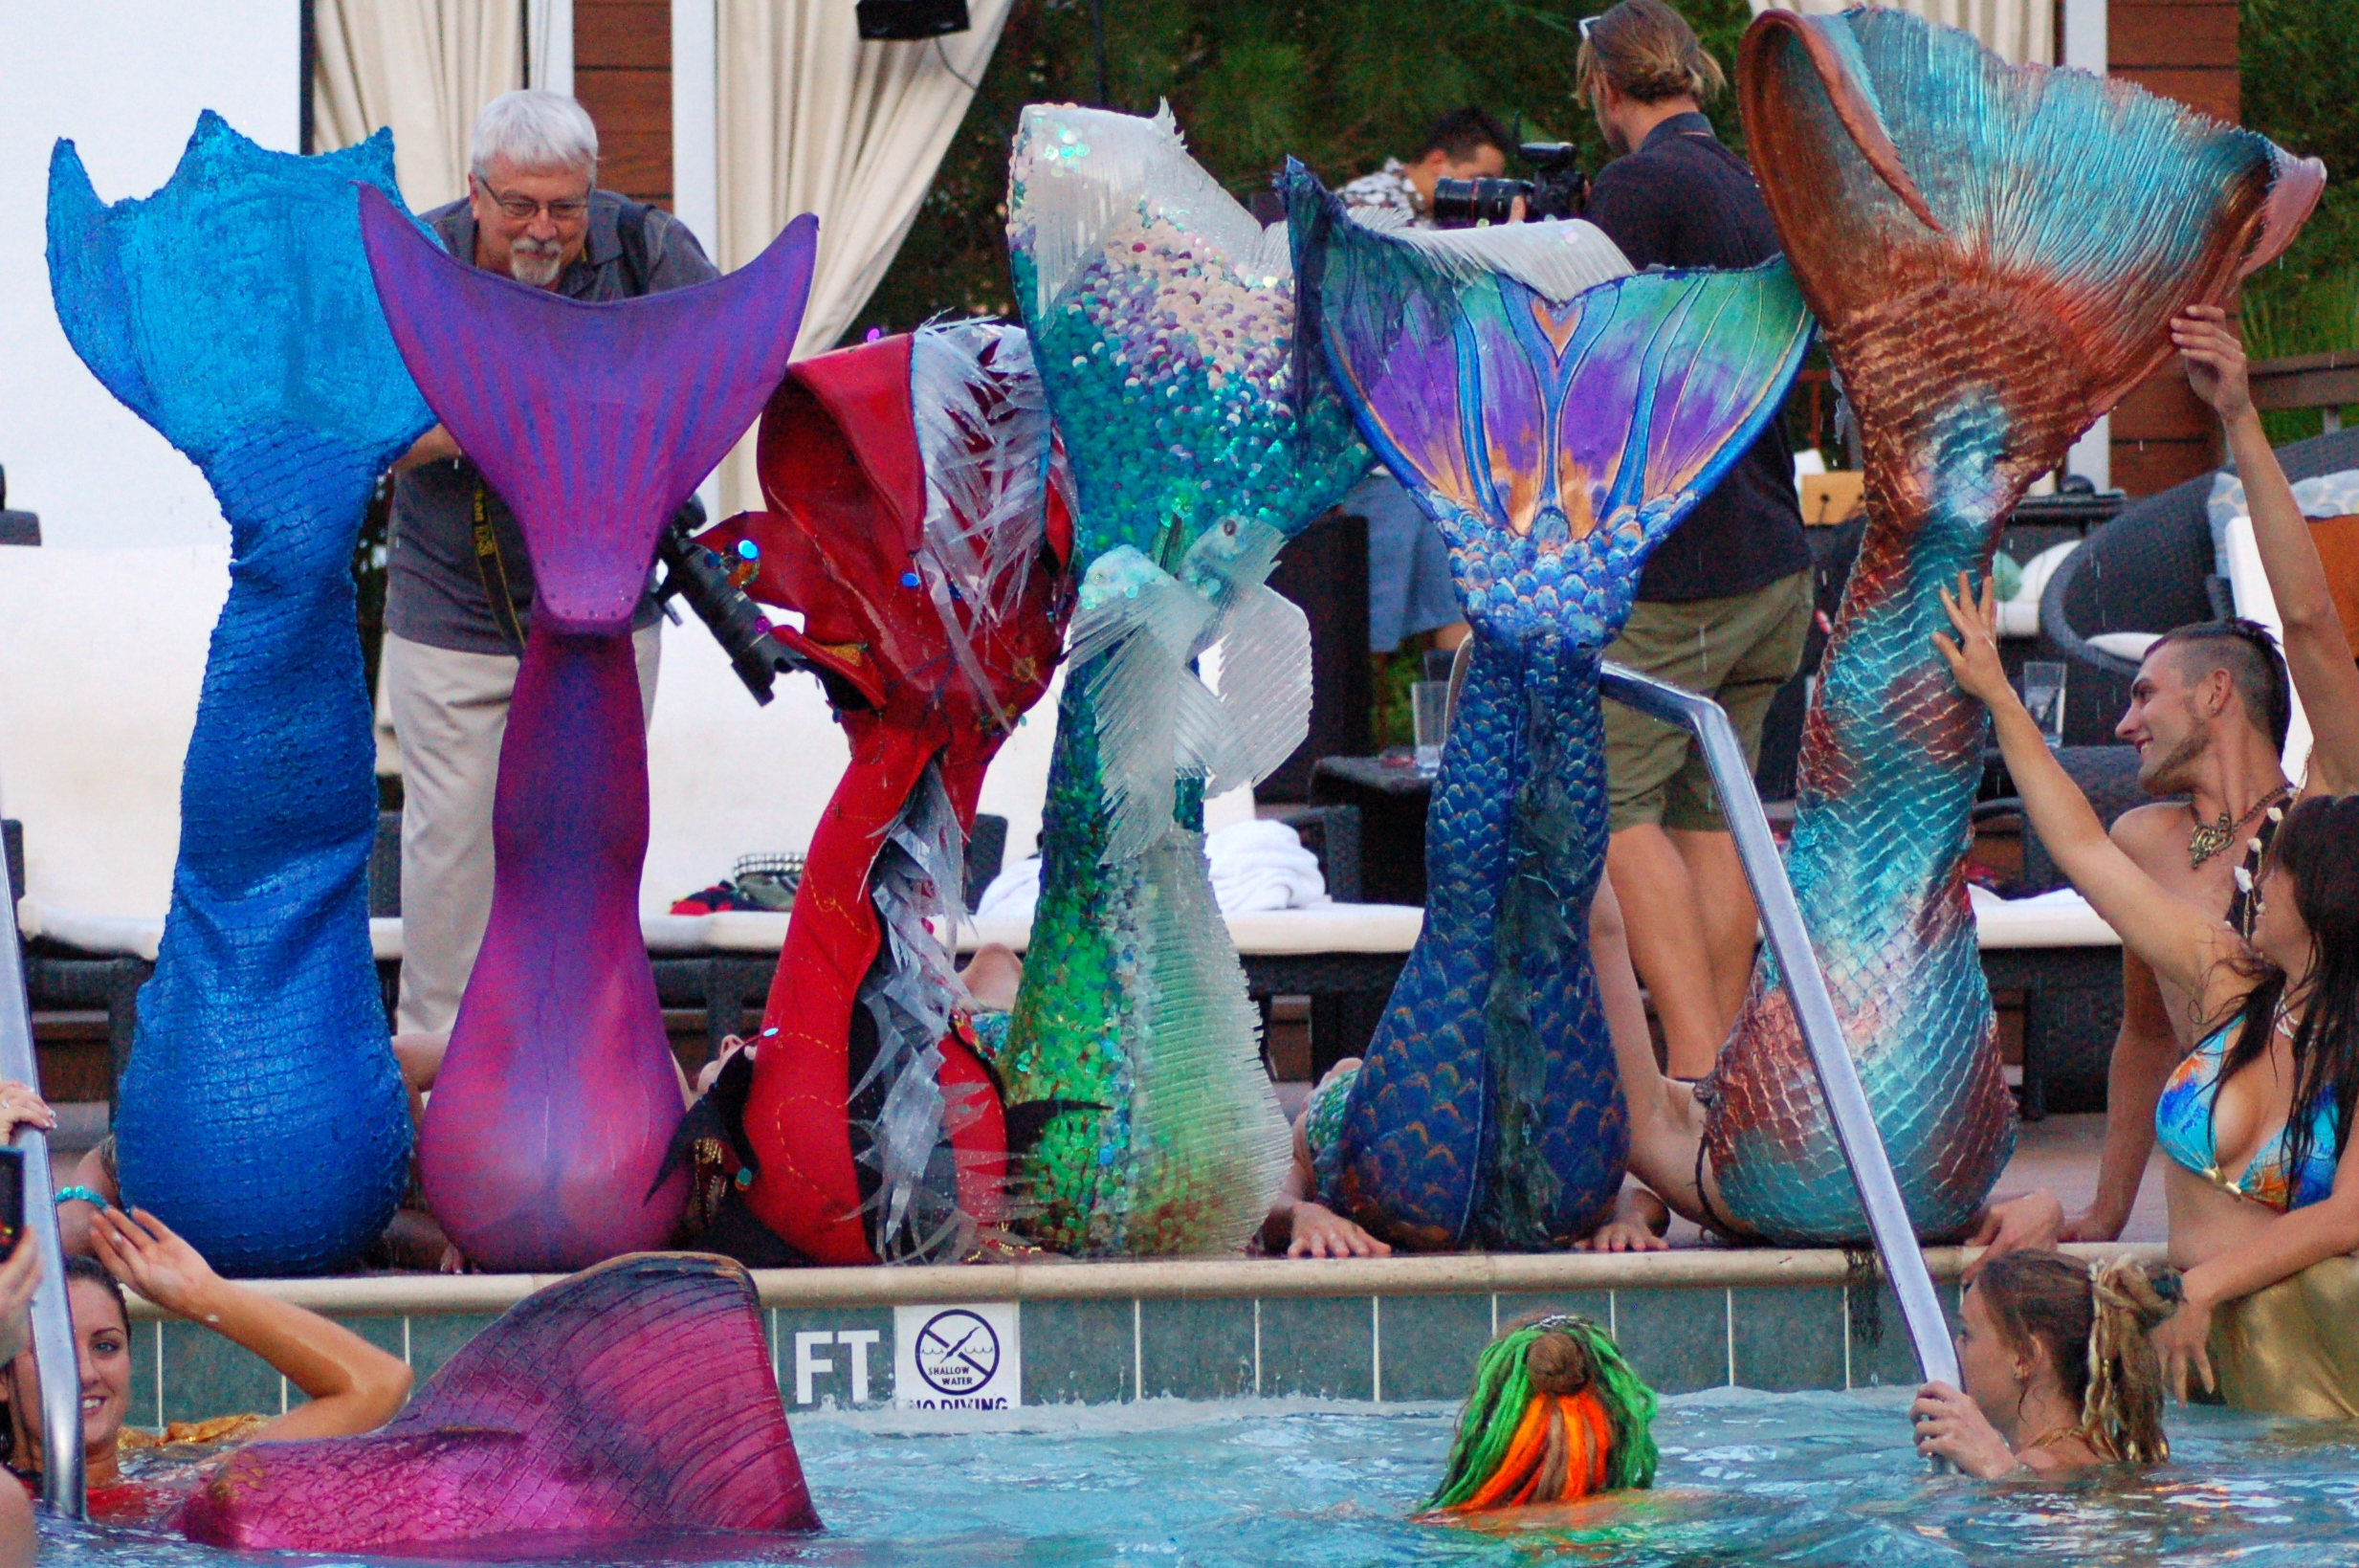 Mermaid Convention Photography Photo #283